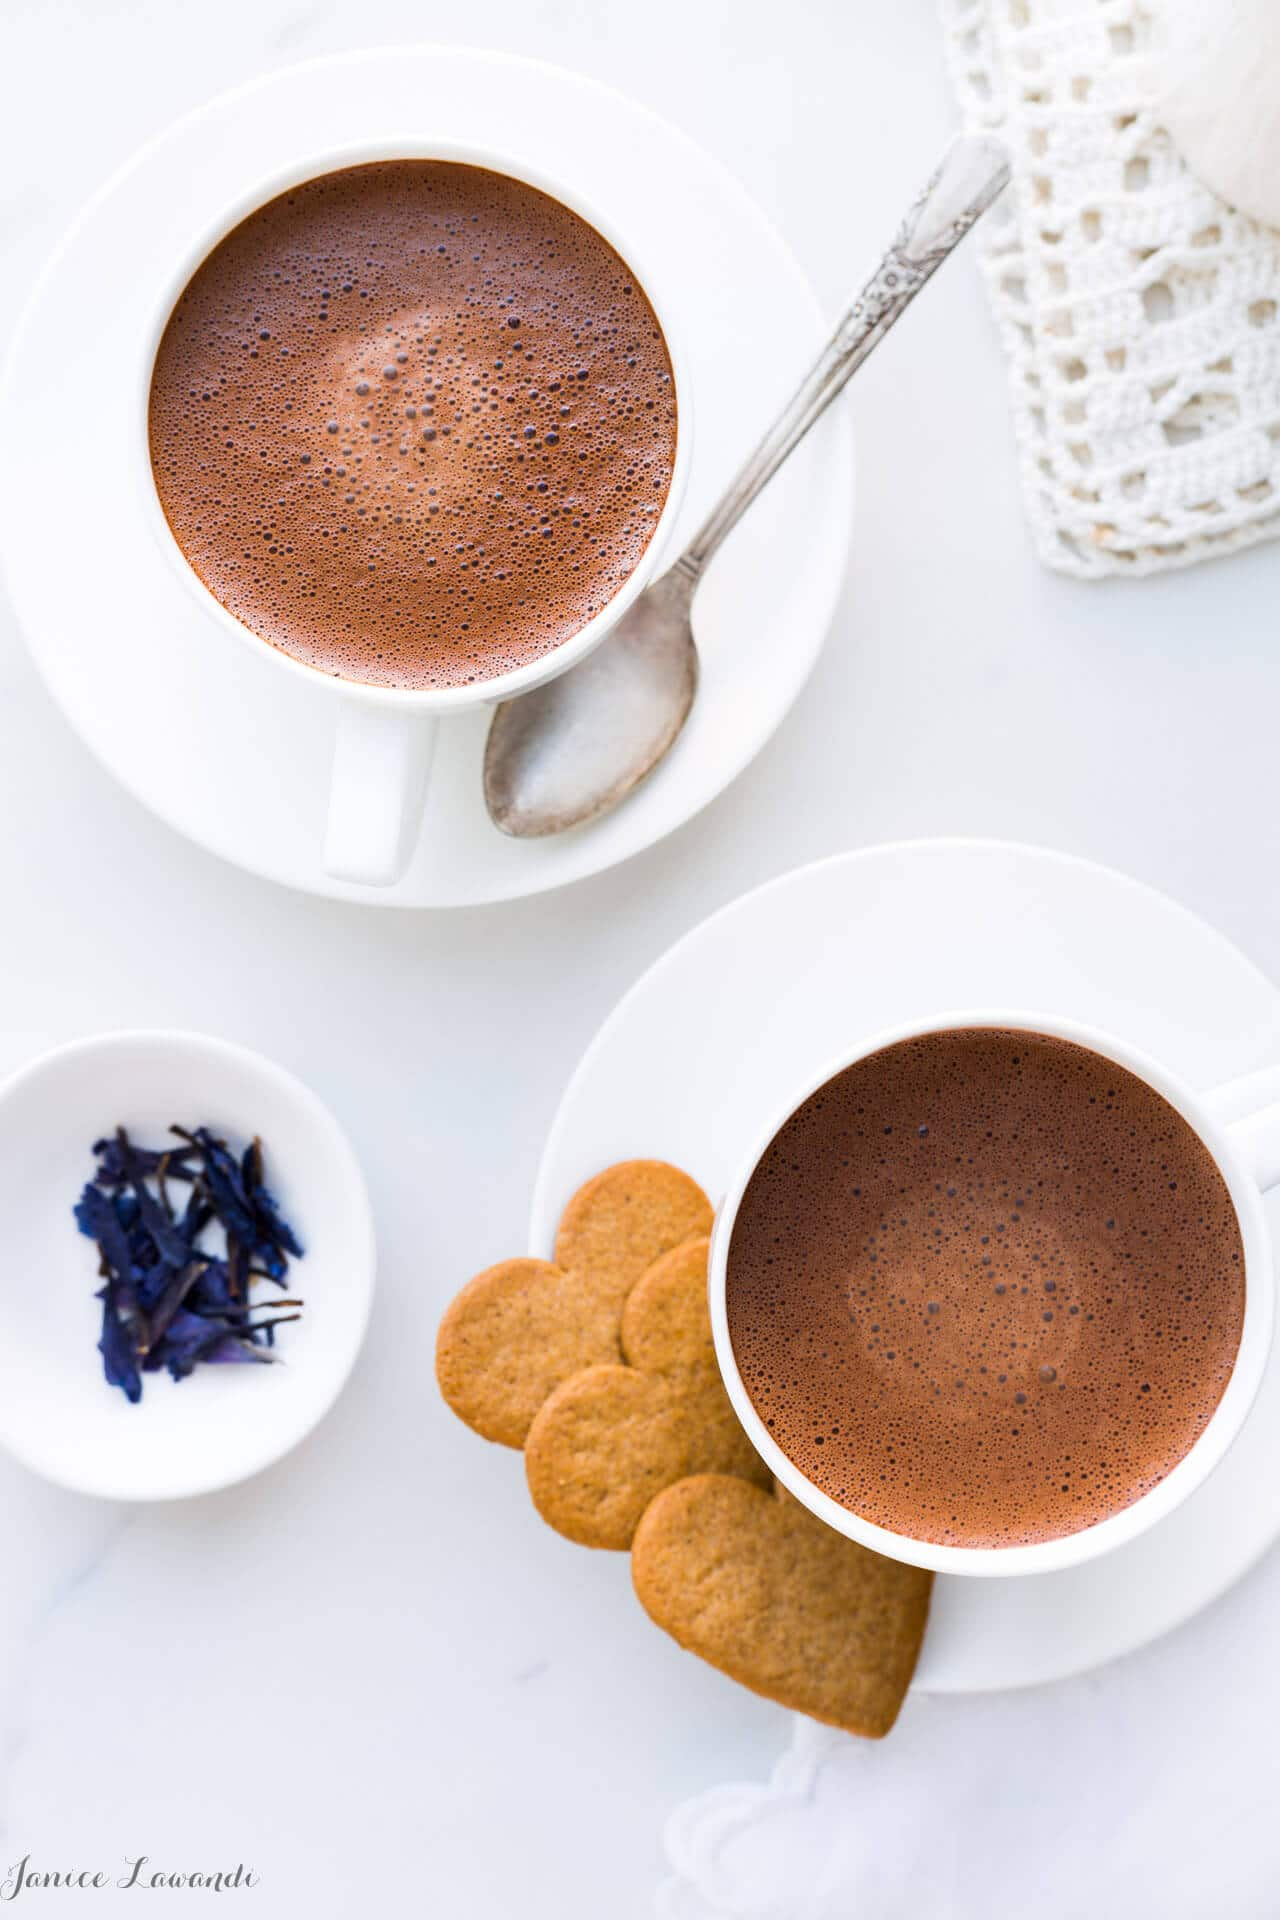 Overhead shot of two cups of hoomemade hot chocolate made with just 2 ingredients: chocolate and milk, and served with heart-shaped cookies.